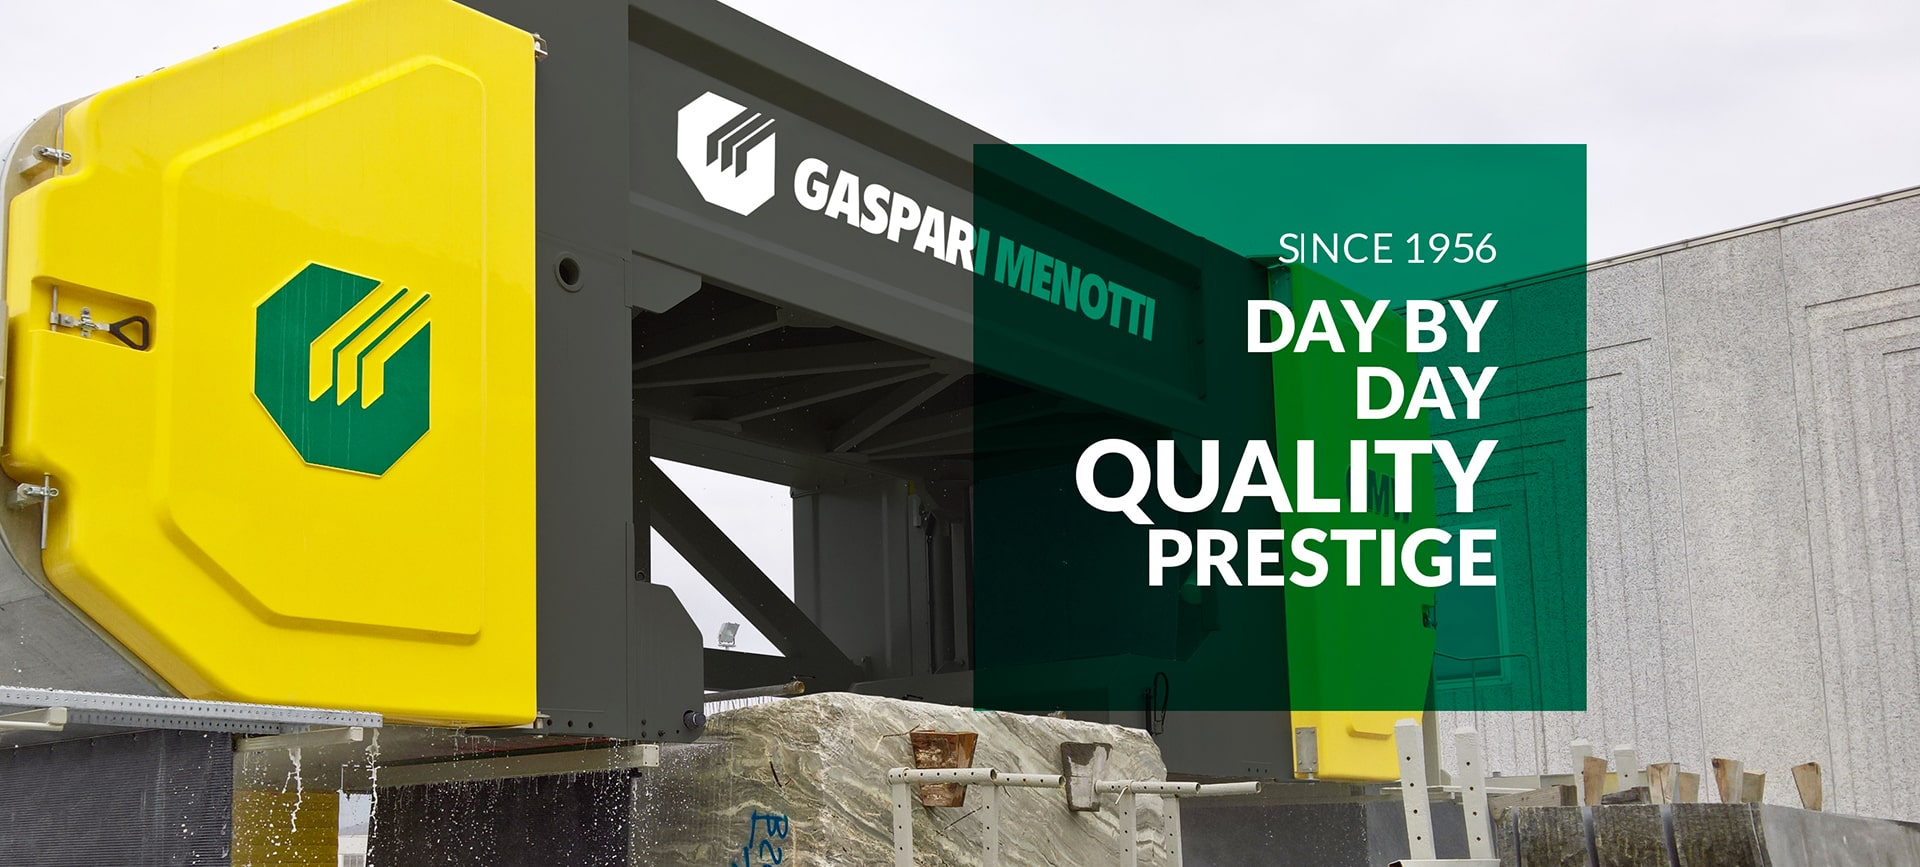 Day by day quality prestige